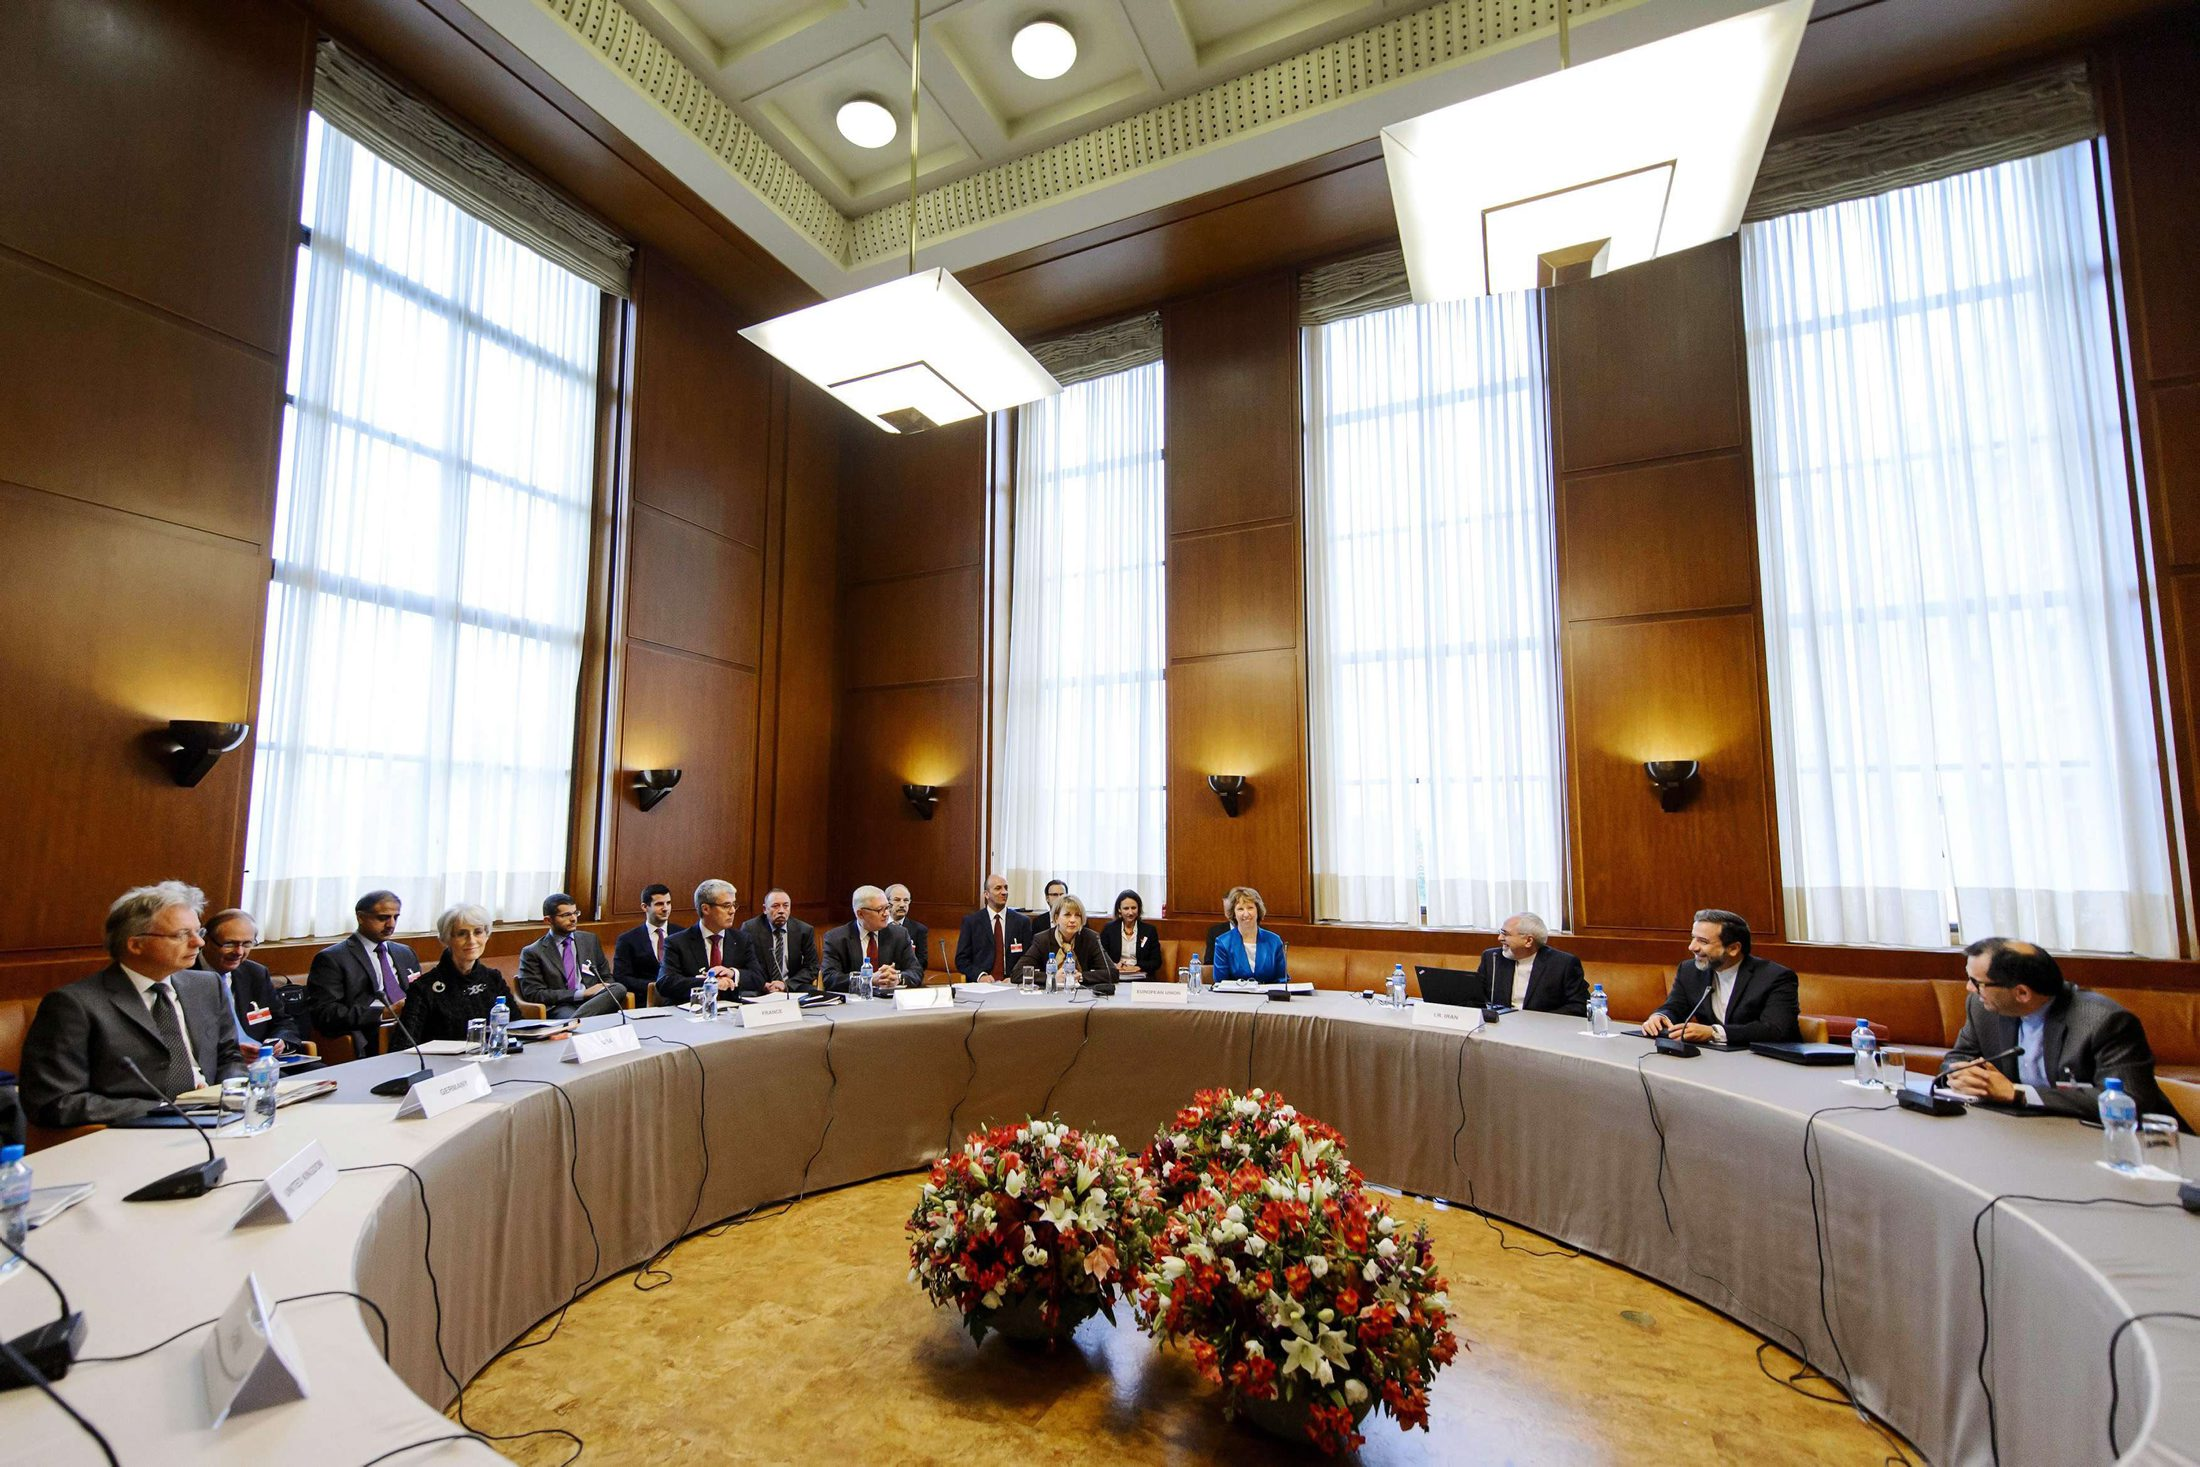 Delegations from Iran and other world powers sit before the start of closed-door nuclear talks at the United Nations offices in Geneva